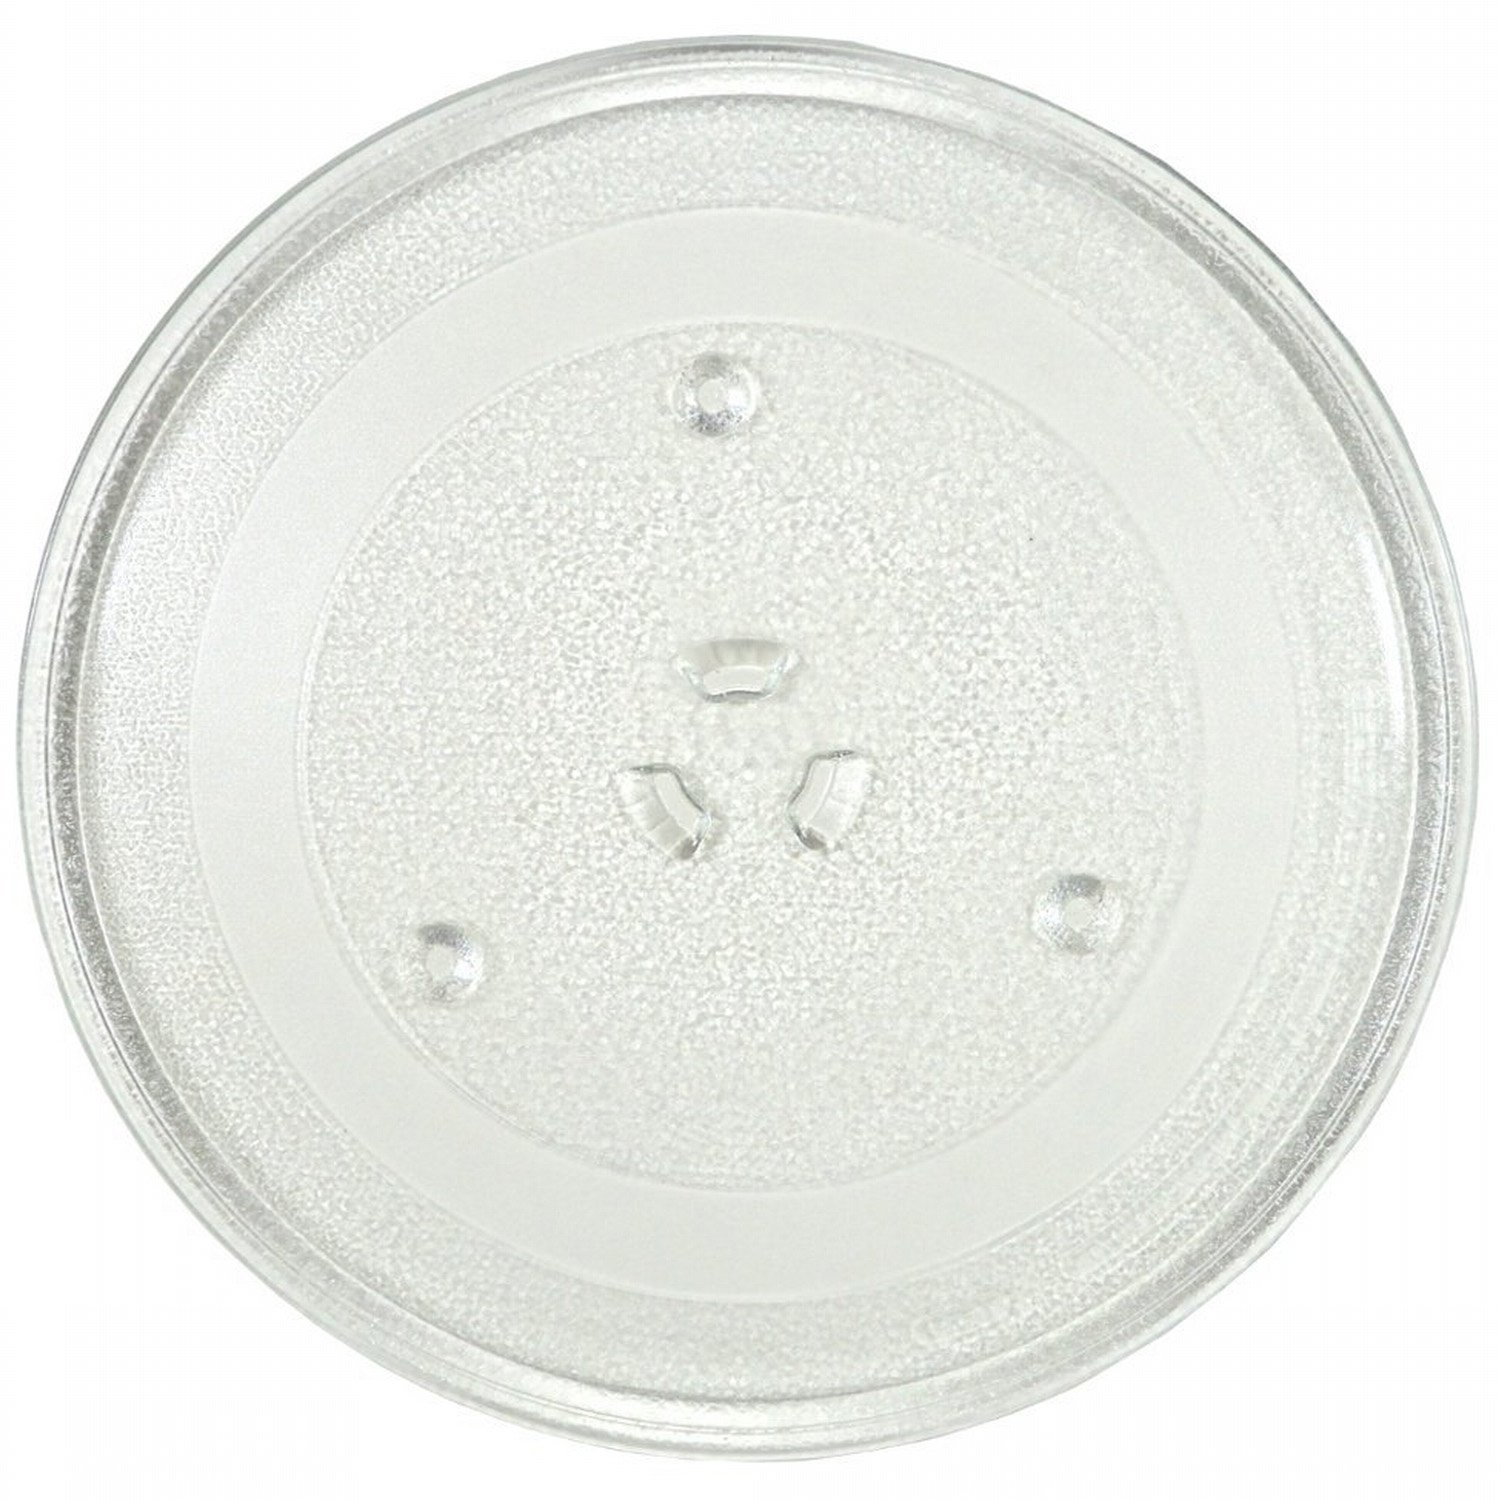 "11.25"" GE and Samsung -Compatible Microwave Glass Plate/Microwave Glass Turntable Plate Replacement - 11 1/4"" Plate, Equivalent to G.E. WB49X10097"